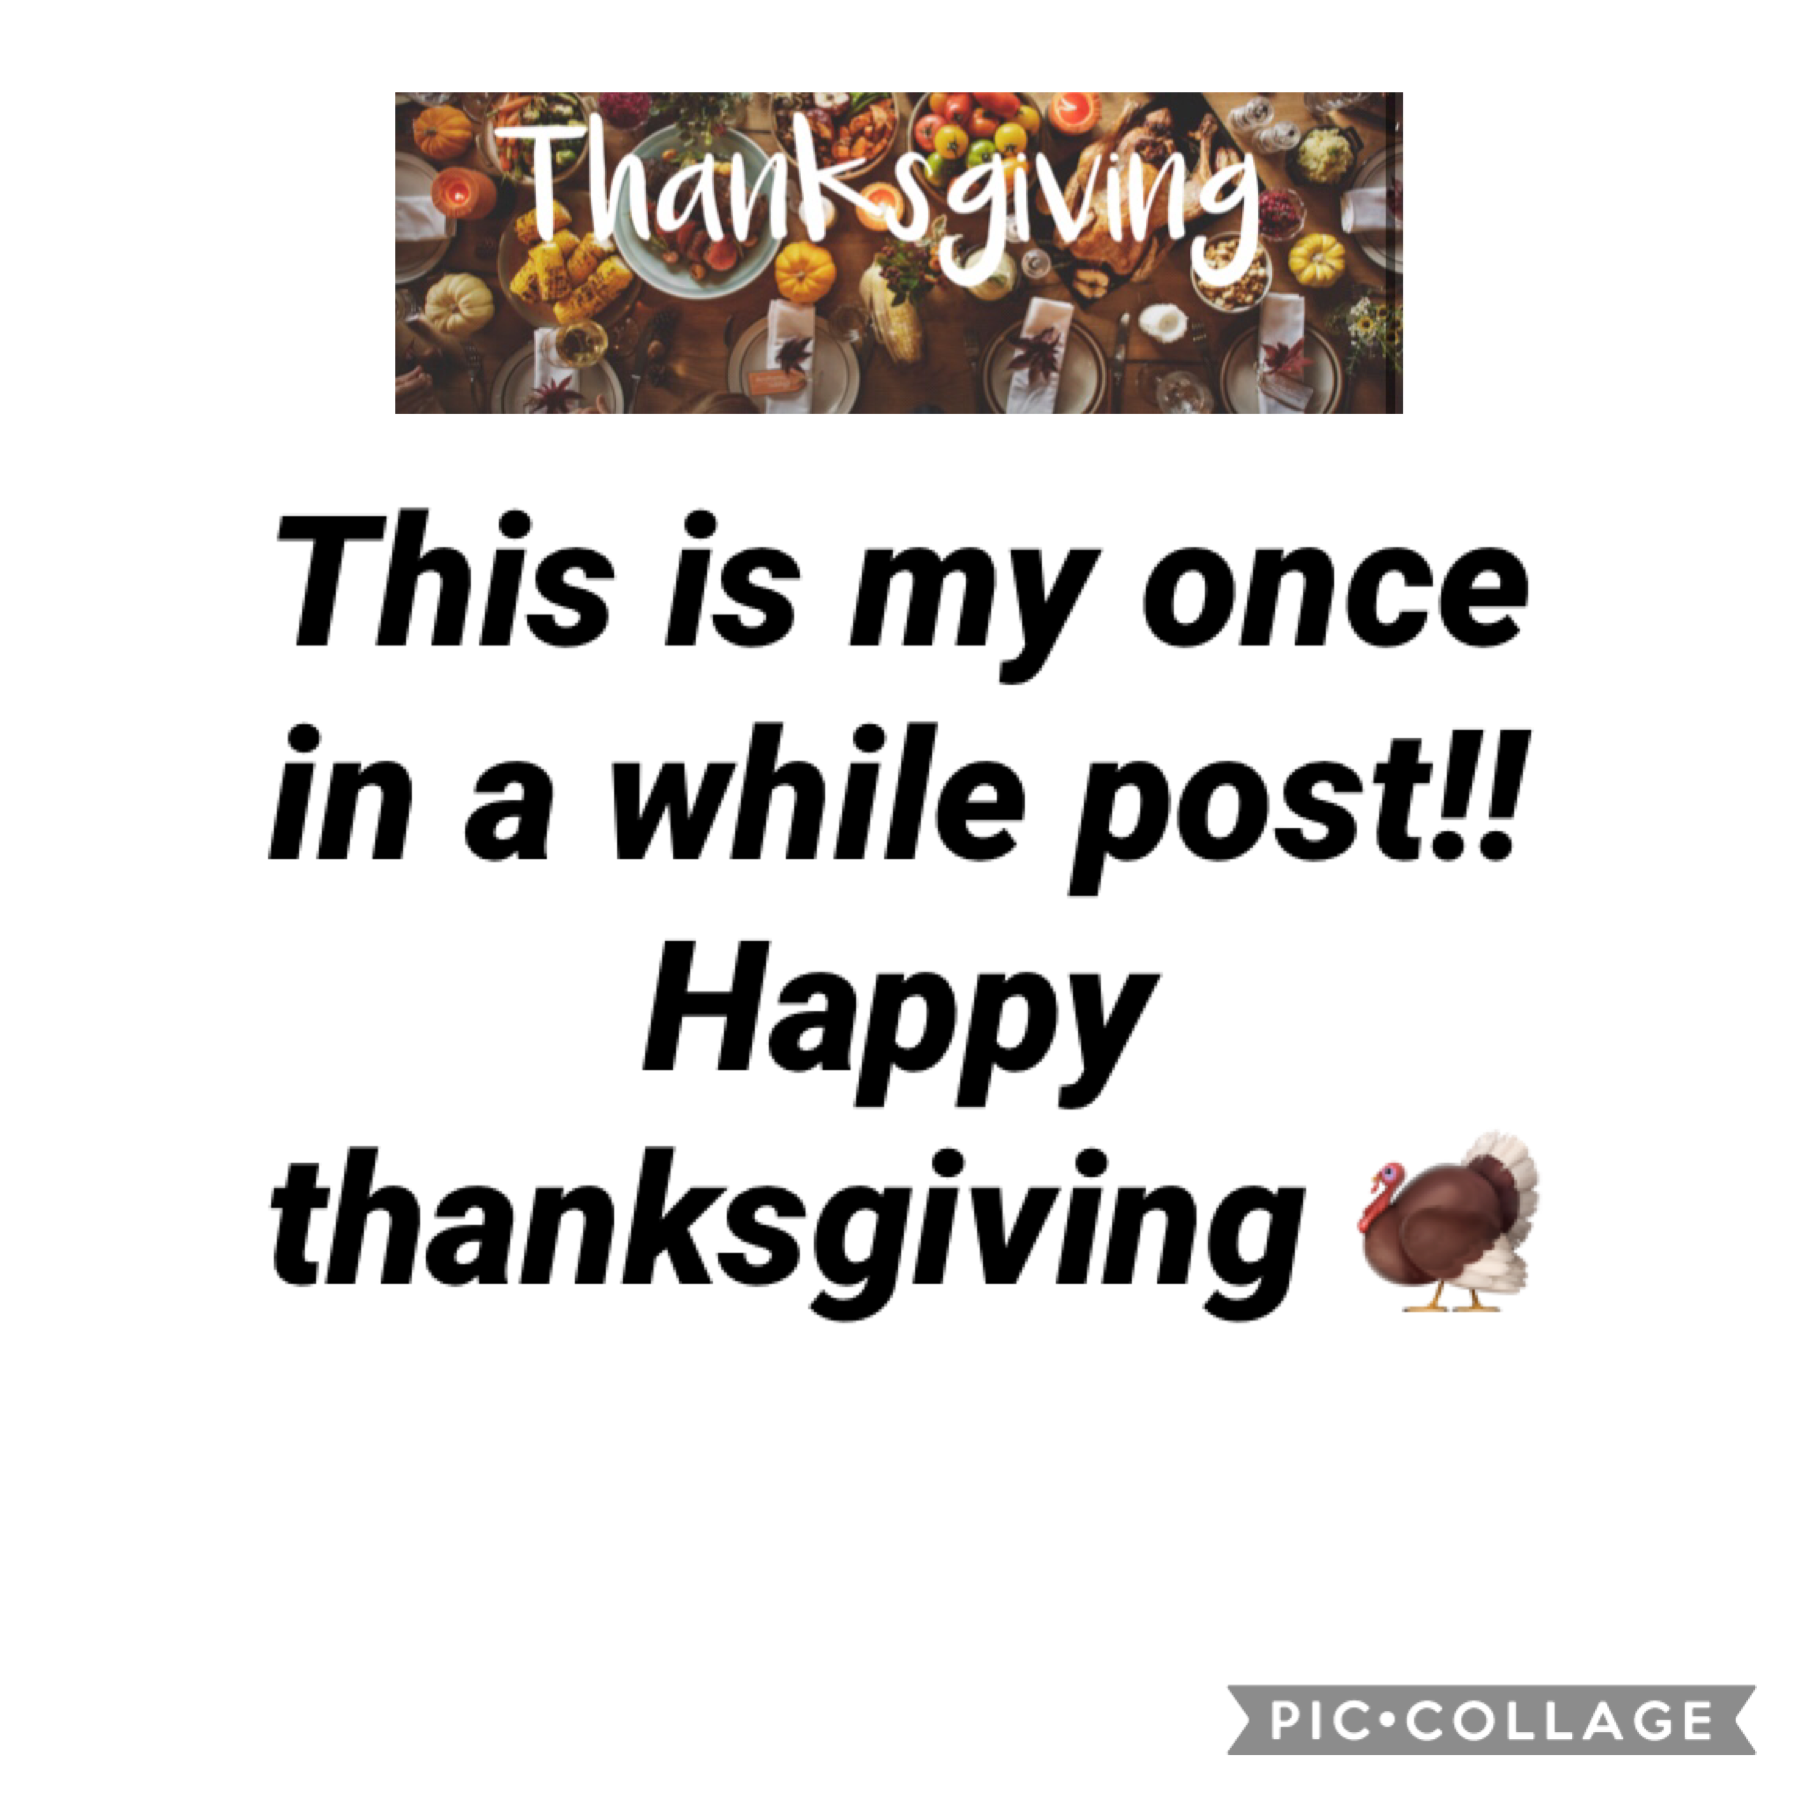 Happy thanksgiving!! This is my once in a while post. Goodbye!